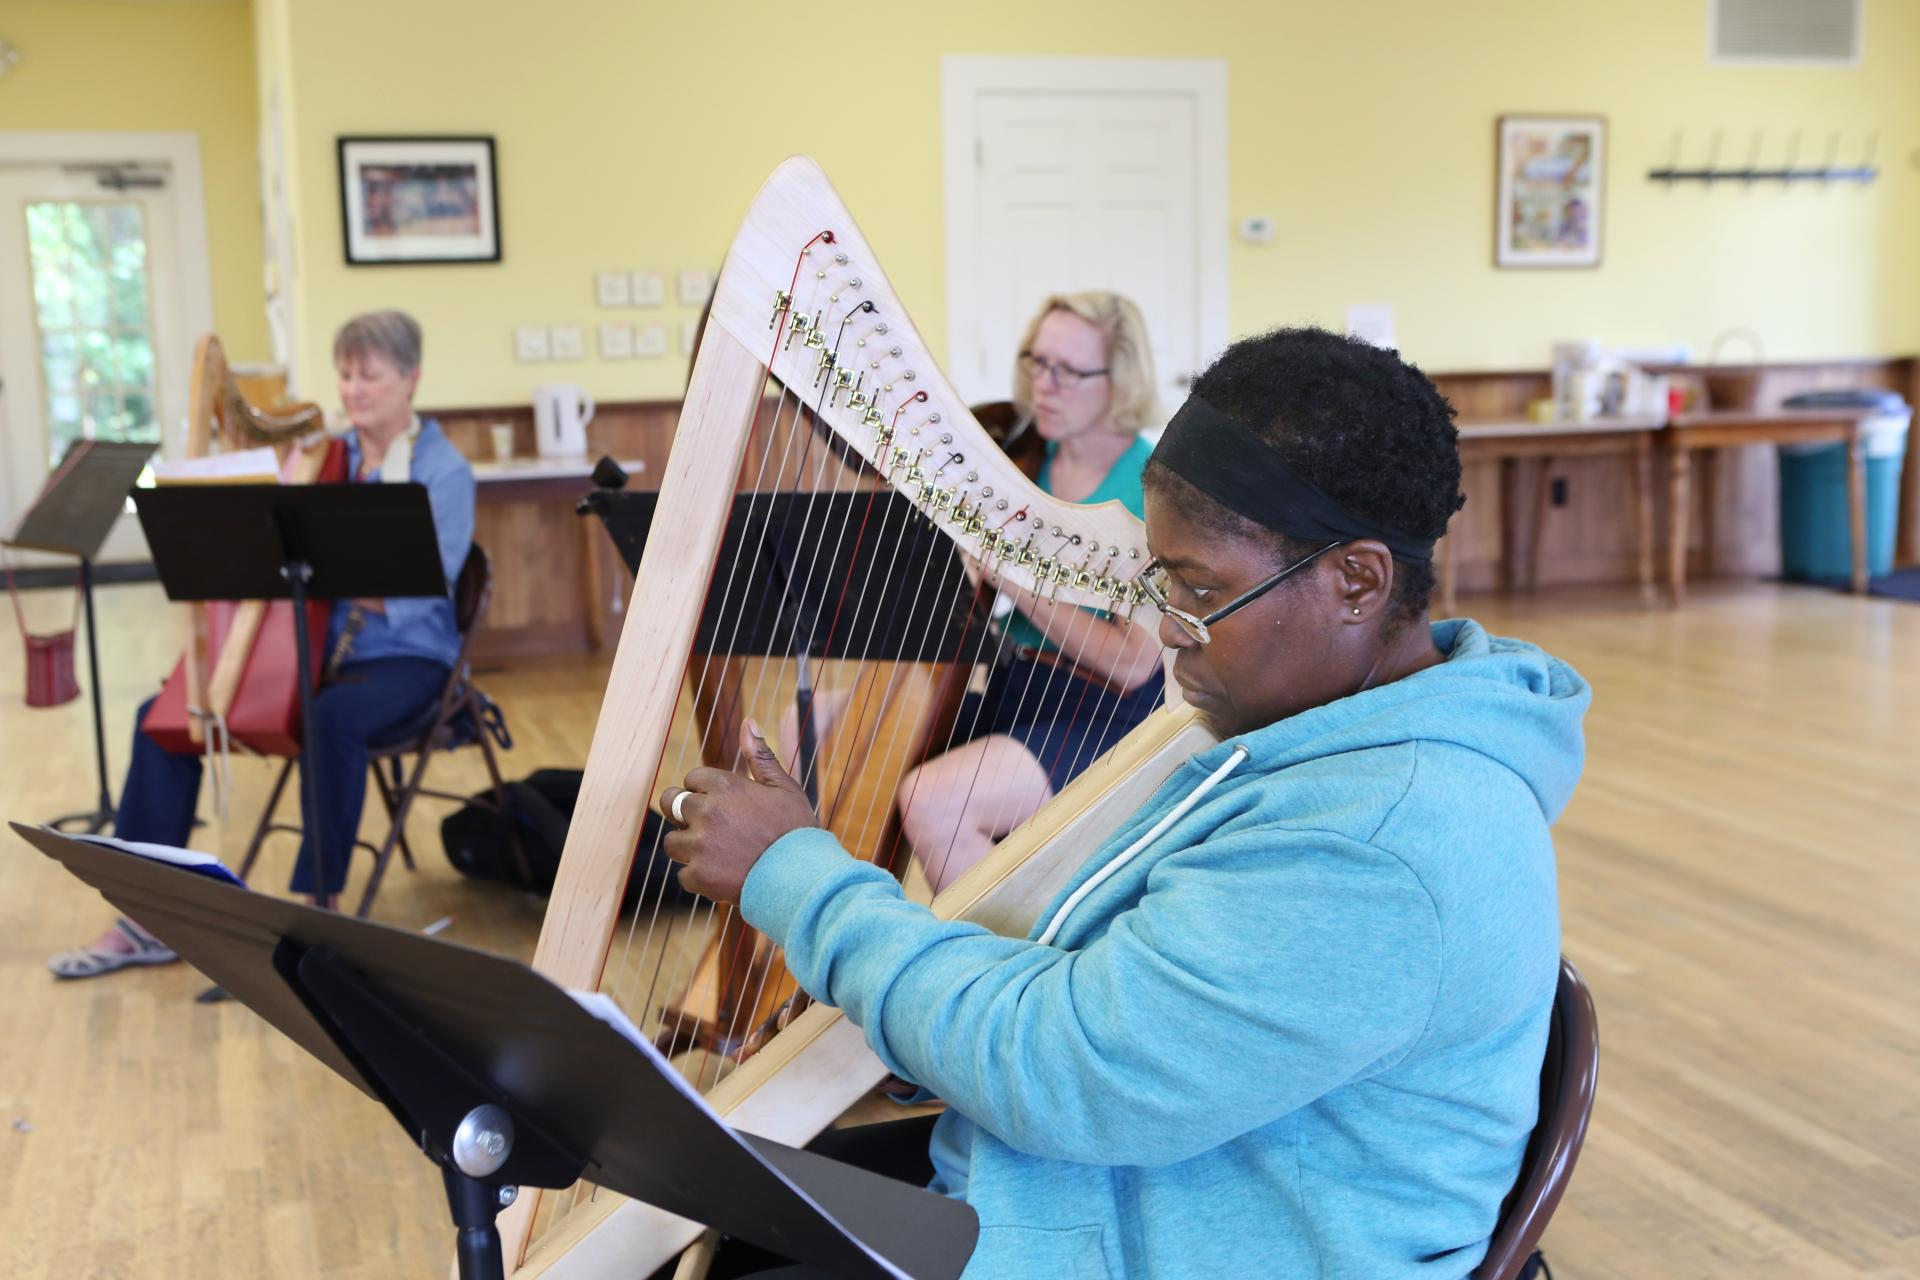 A John C Campbell Folk School student playing harp in a